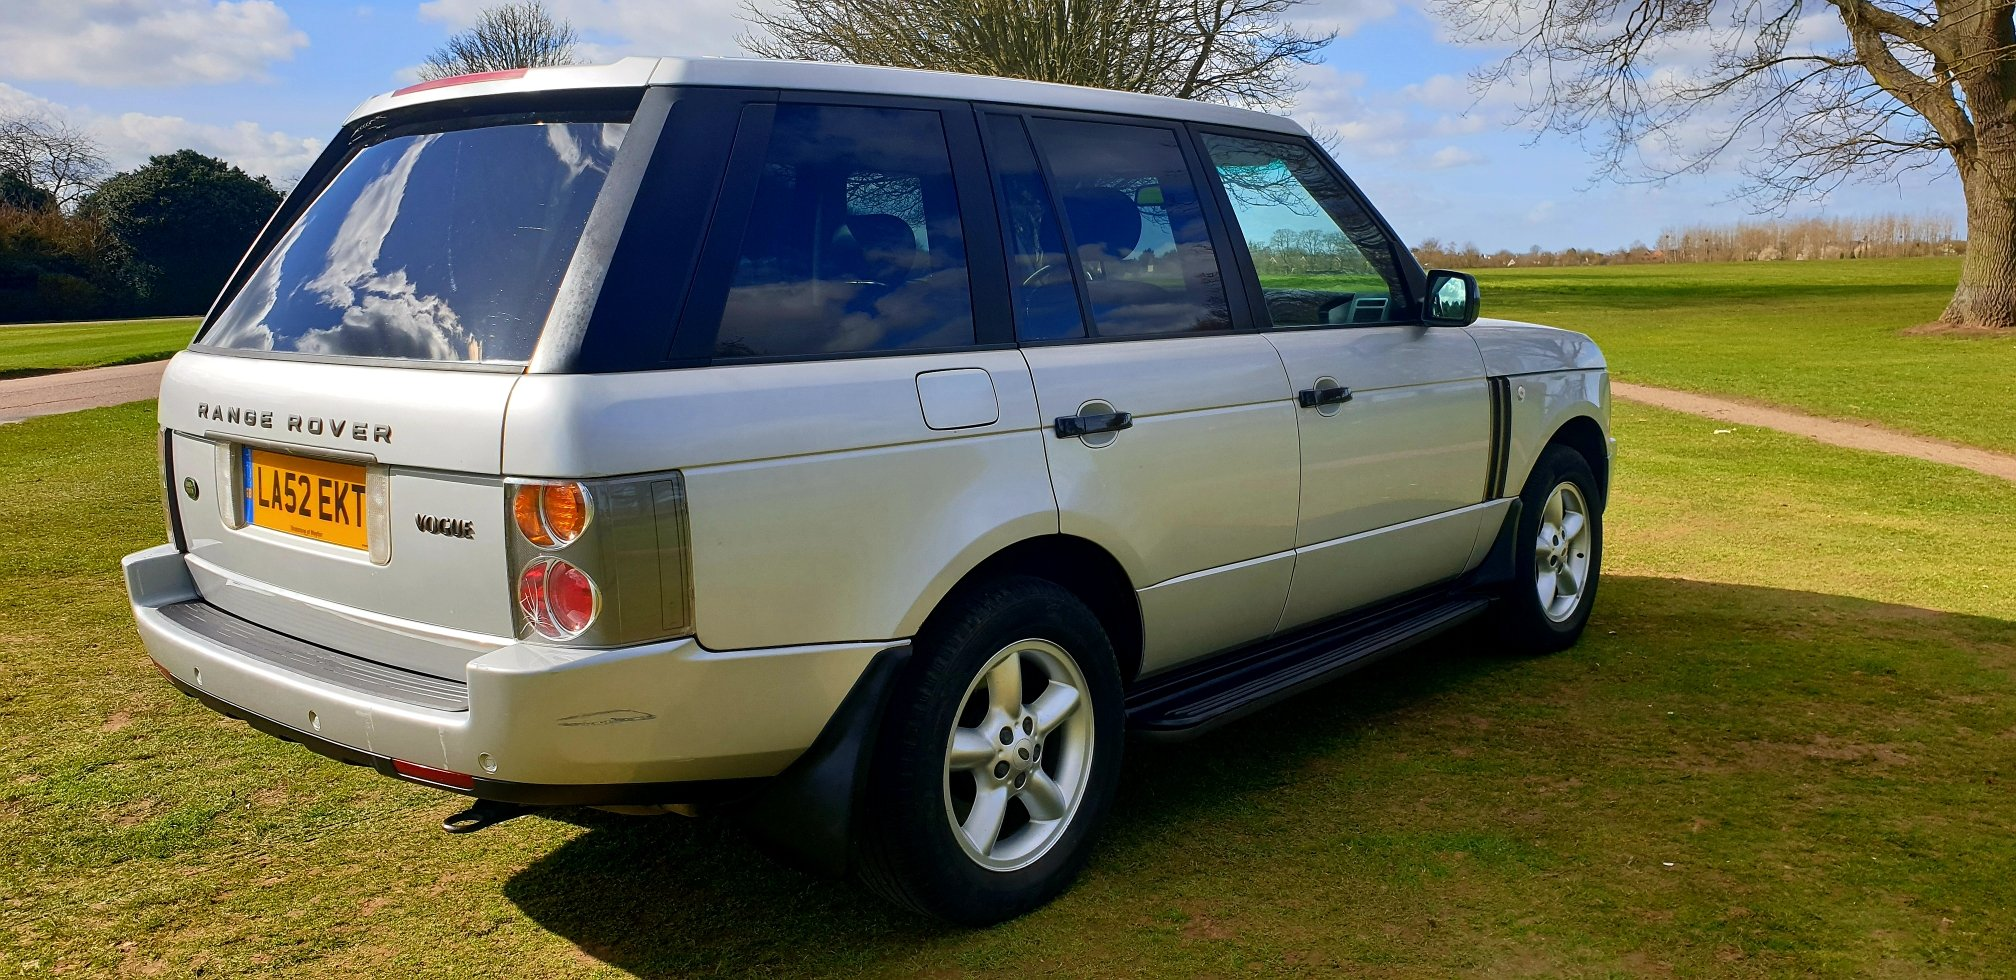 2002 LHD Range Rover 3.0 TD6 4X4 Auto Vogue,LEFT HAND DRIVE For Sale (picture 2 of 6)